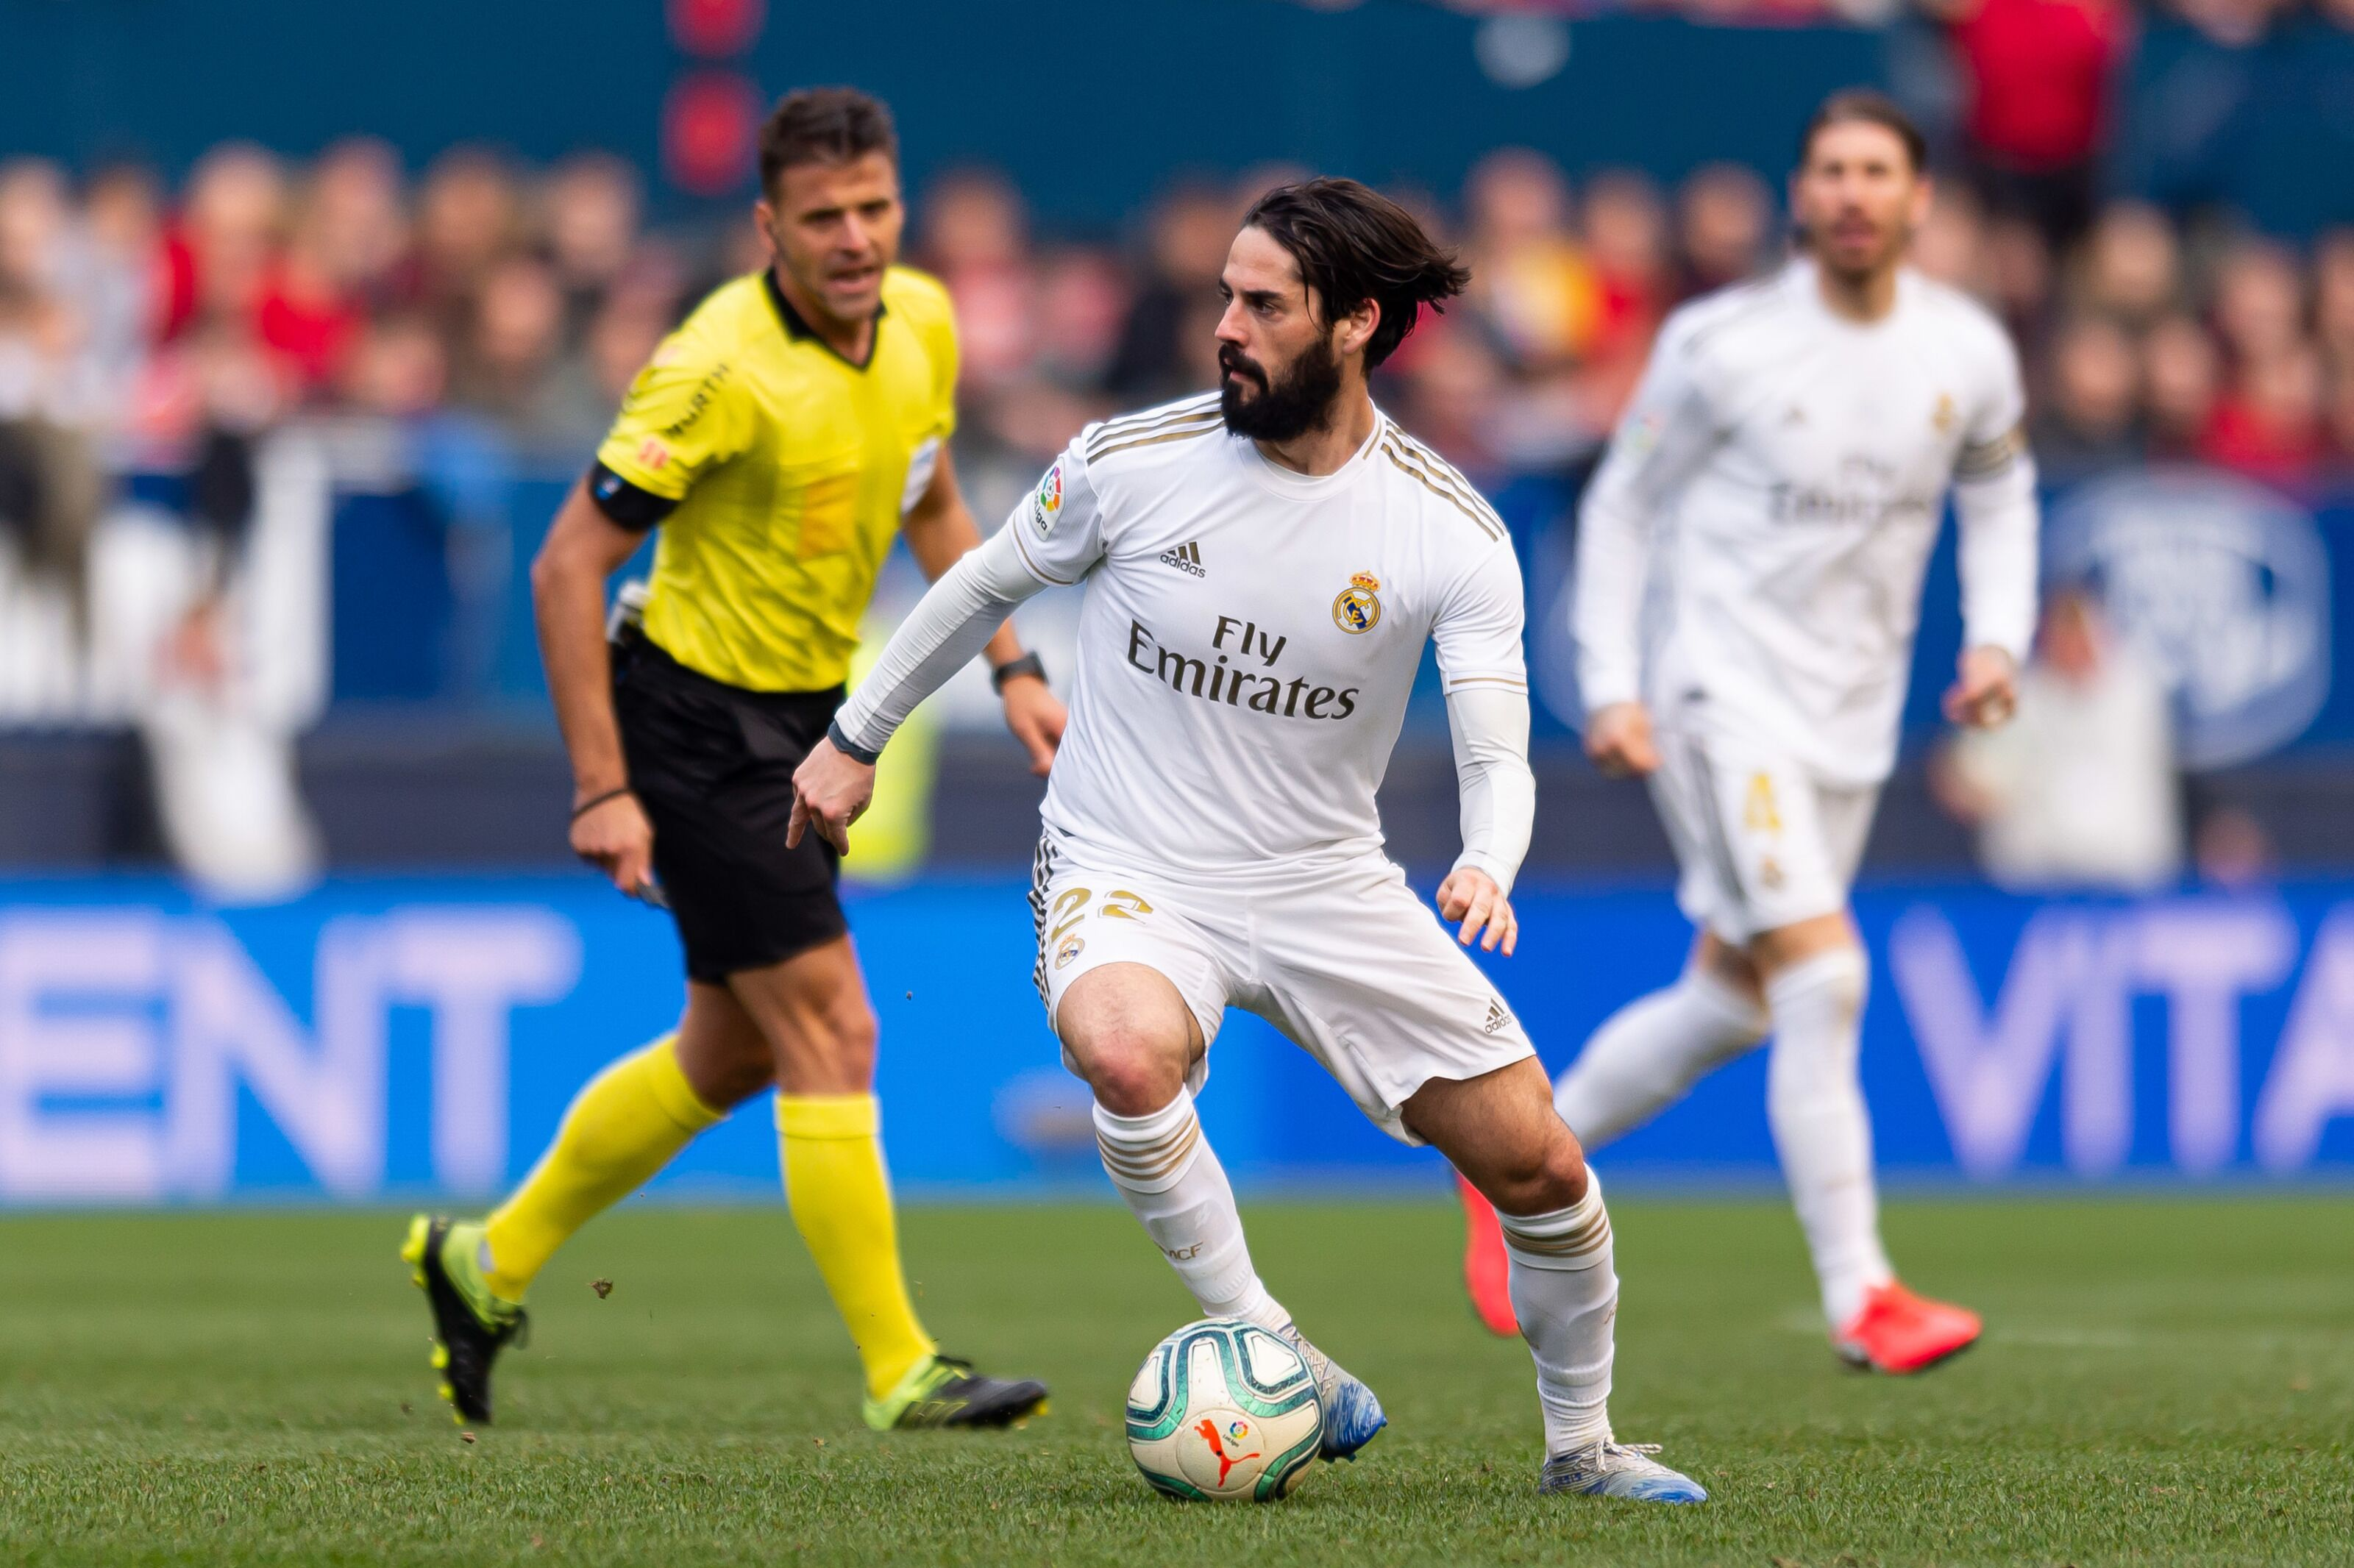 Real Madrid: Isco responds to critics in style at Osasuna